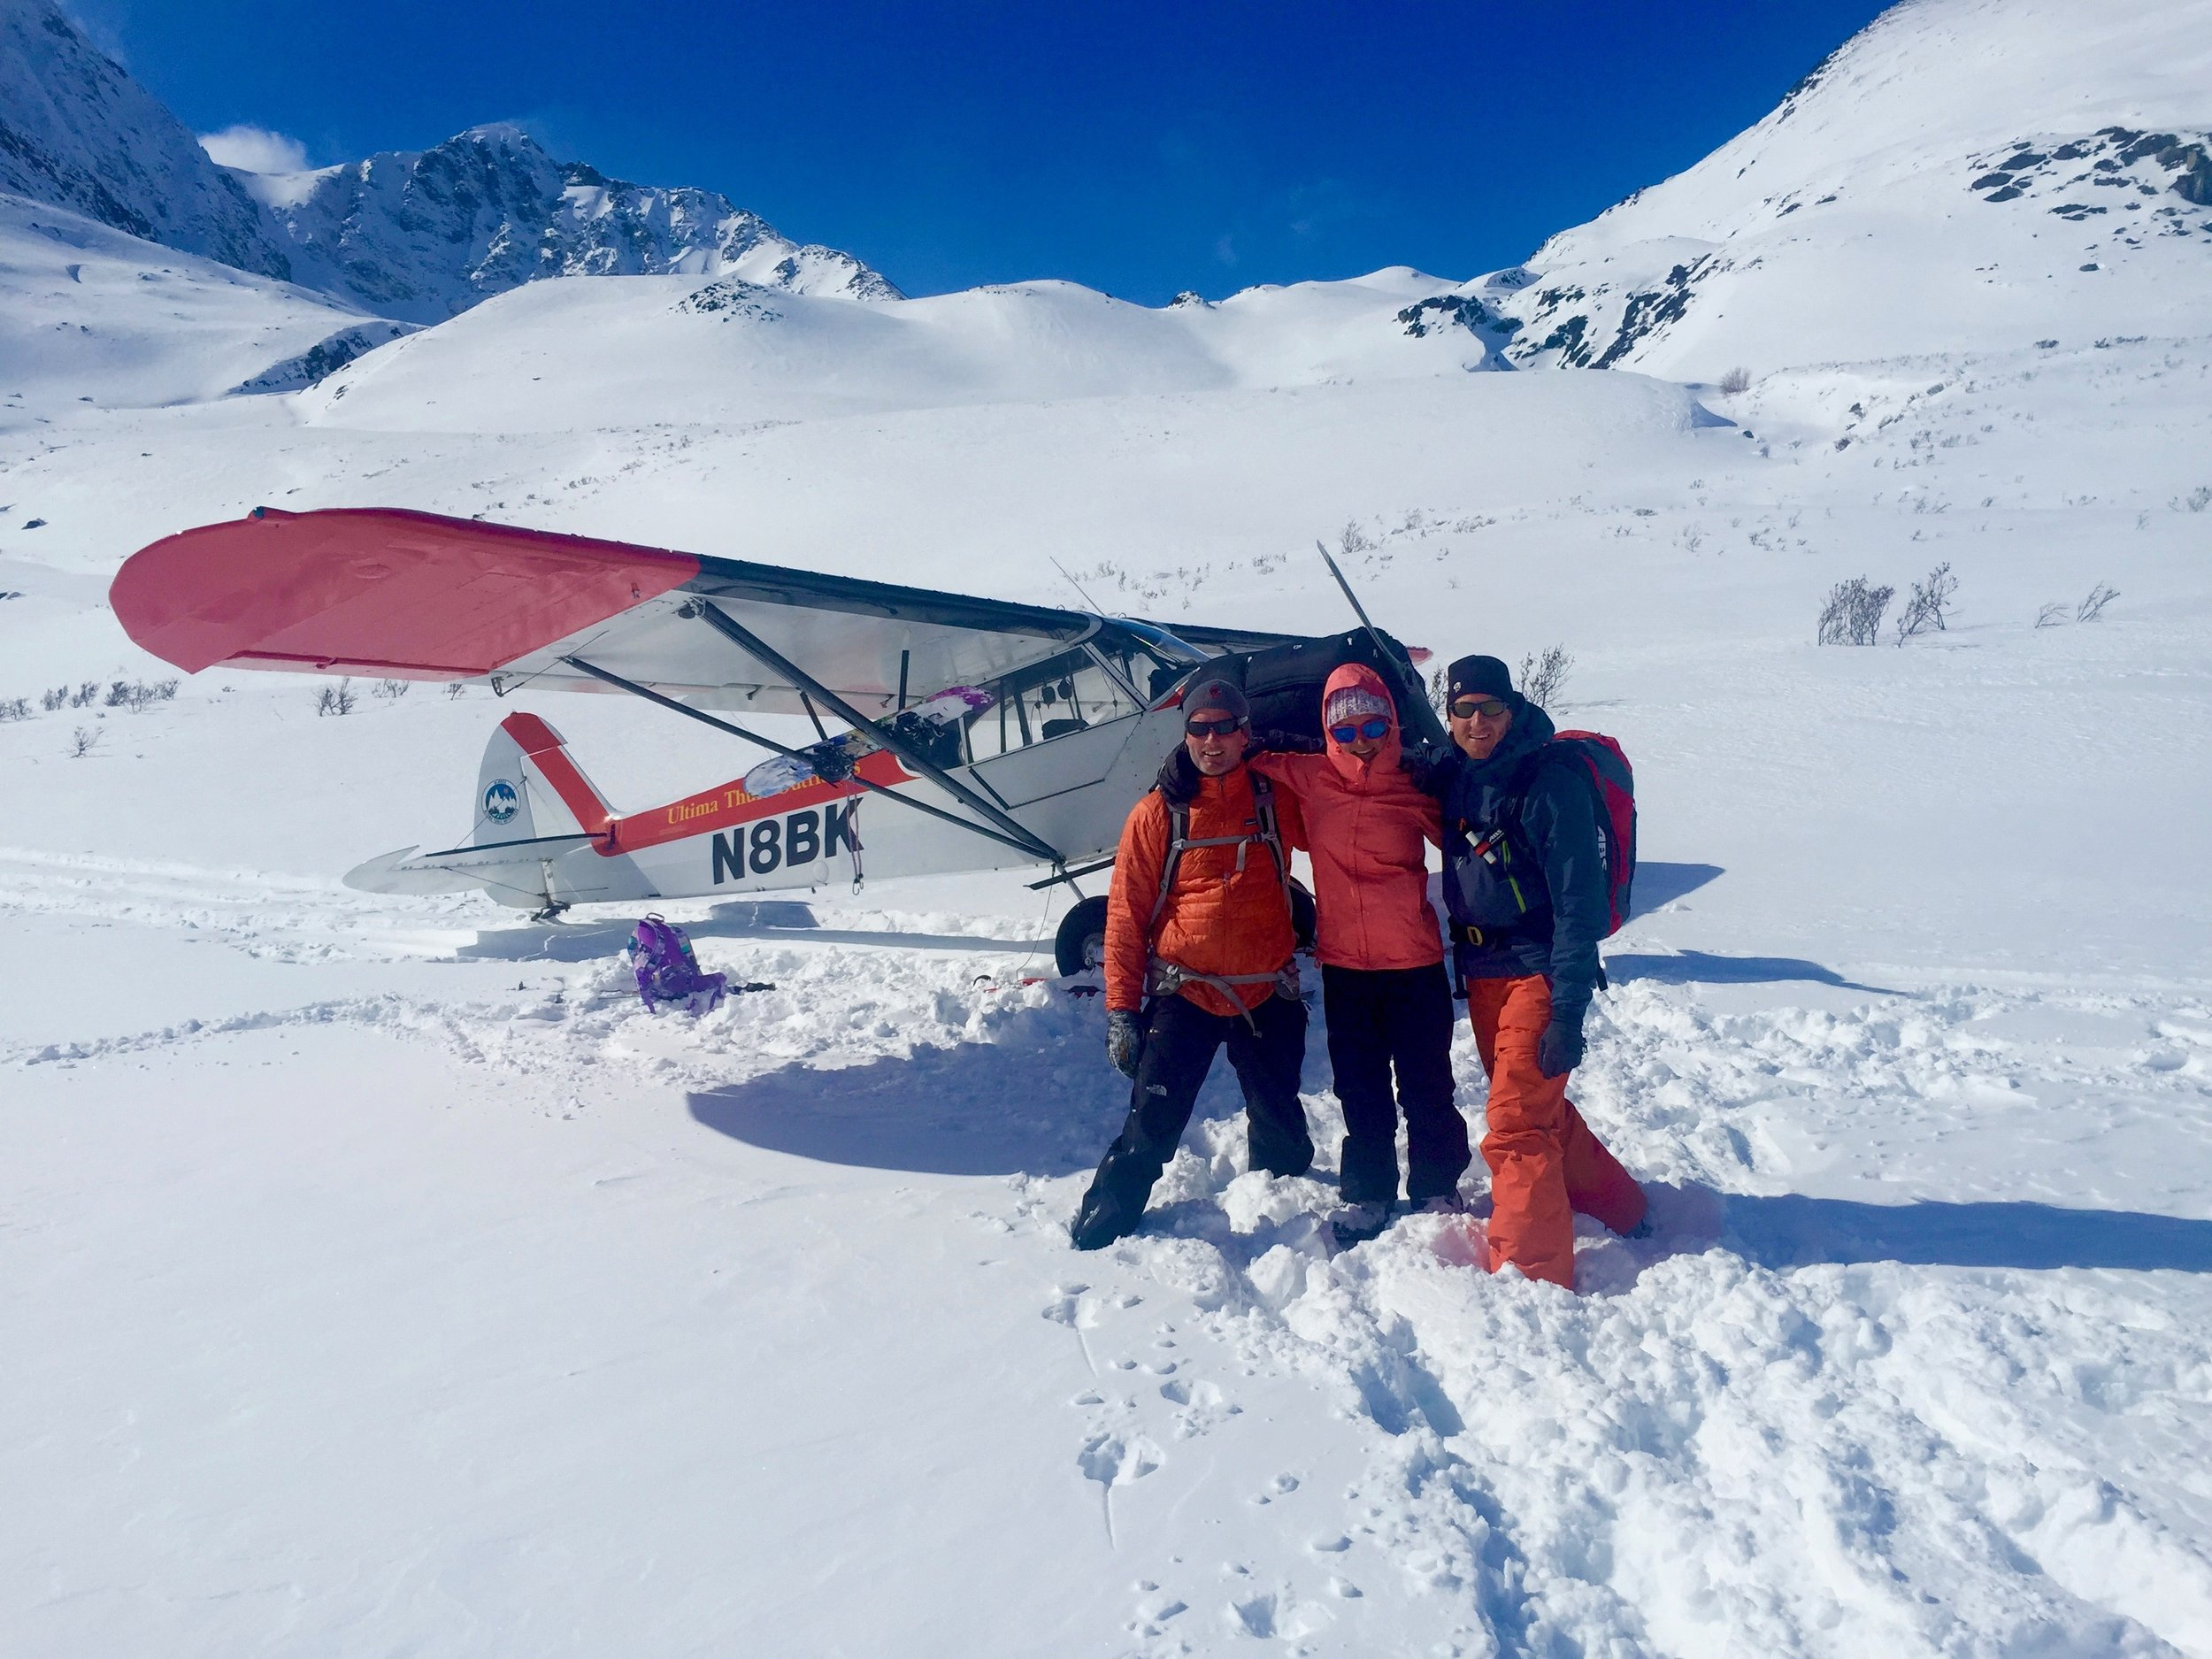 Super cubs on skis are the best way to back country ski and split board in Alaska. Especially when my man is the pilot.